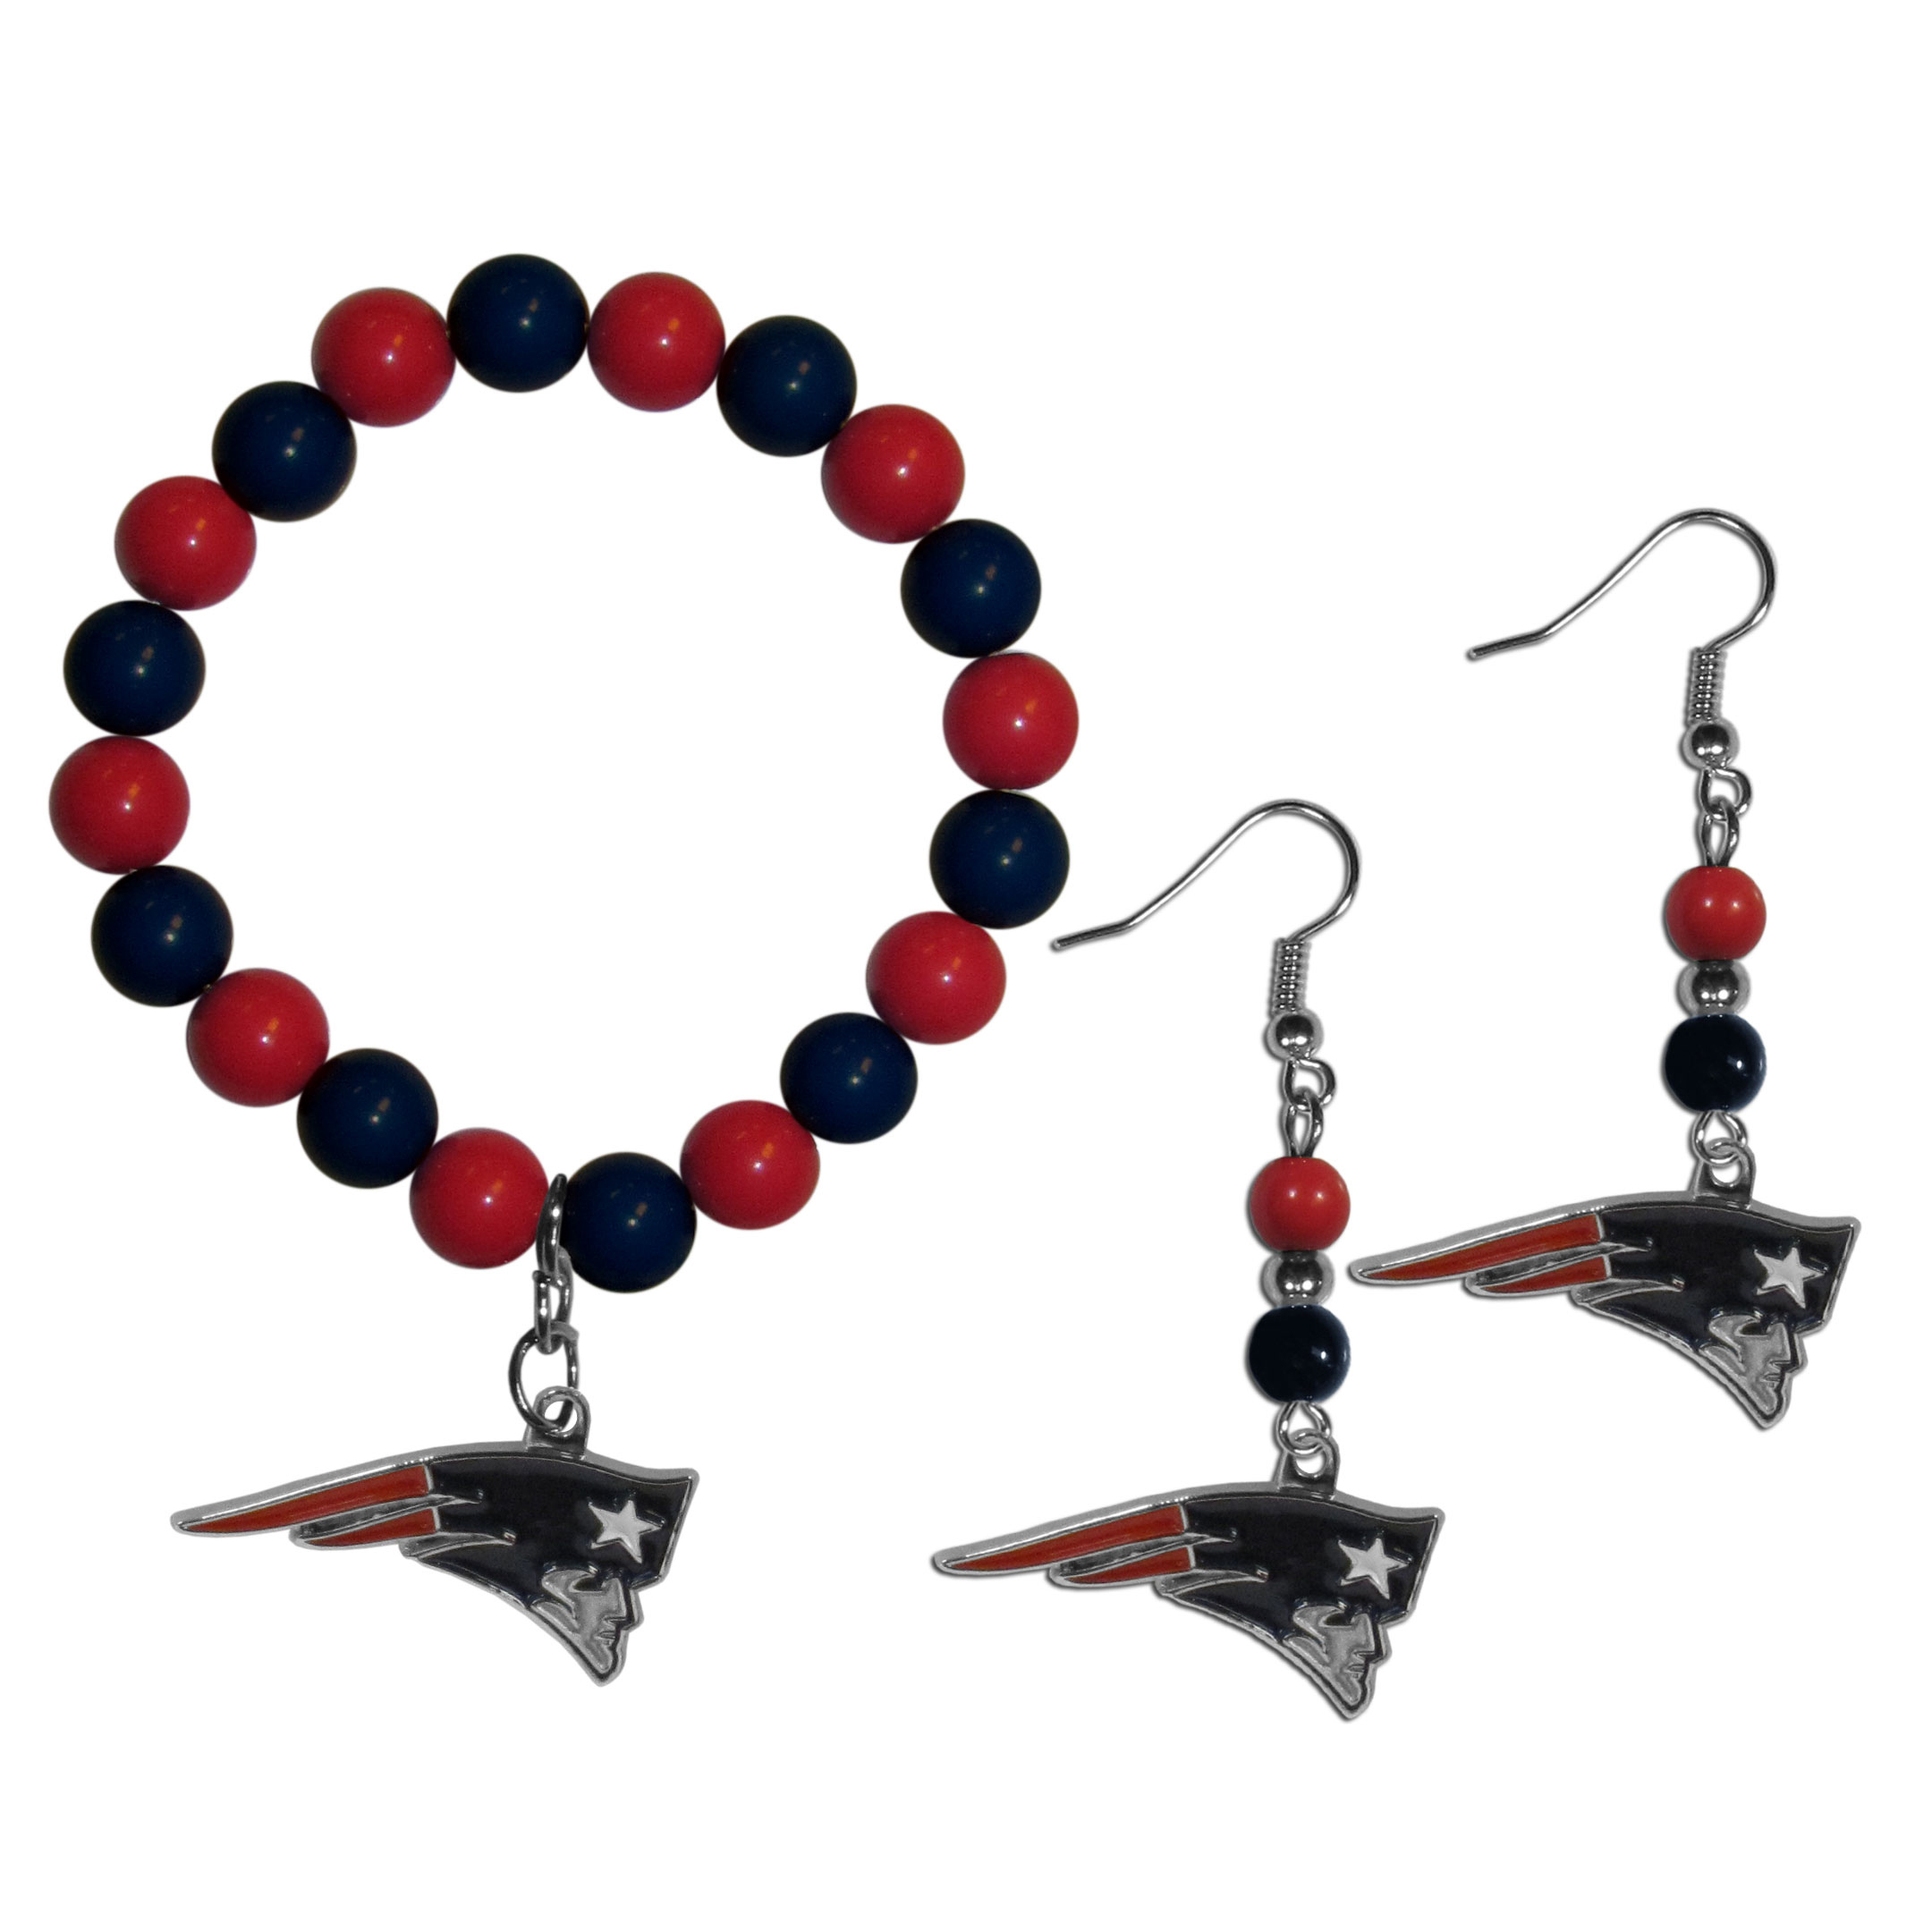 New England Patriots Fan Bead Earrings and Bracelet Set - This fun and colorful New England Patriots fan bead jewelry set is fun and casual with eye-catching beads in bright team colors. The fashionable dangle earrings feature a team colored beads that drop down to a carved and enameled charm. The stretch bracelet has larger matching beads that make a striking statement and have a matching team charm. These sassy yet sporty jewelry pieces make a perfect gift for any female fan. Spice up your game-day outfit with these fun colorful earrings and bracelet that are also cute enough for any day.